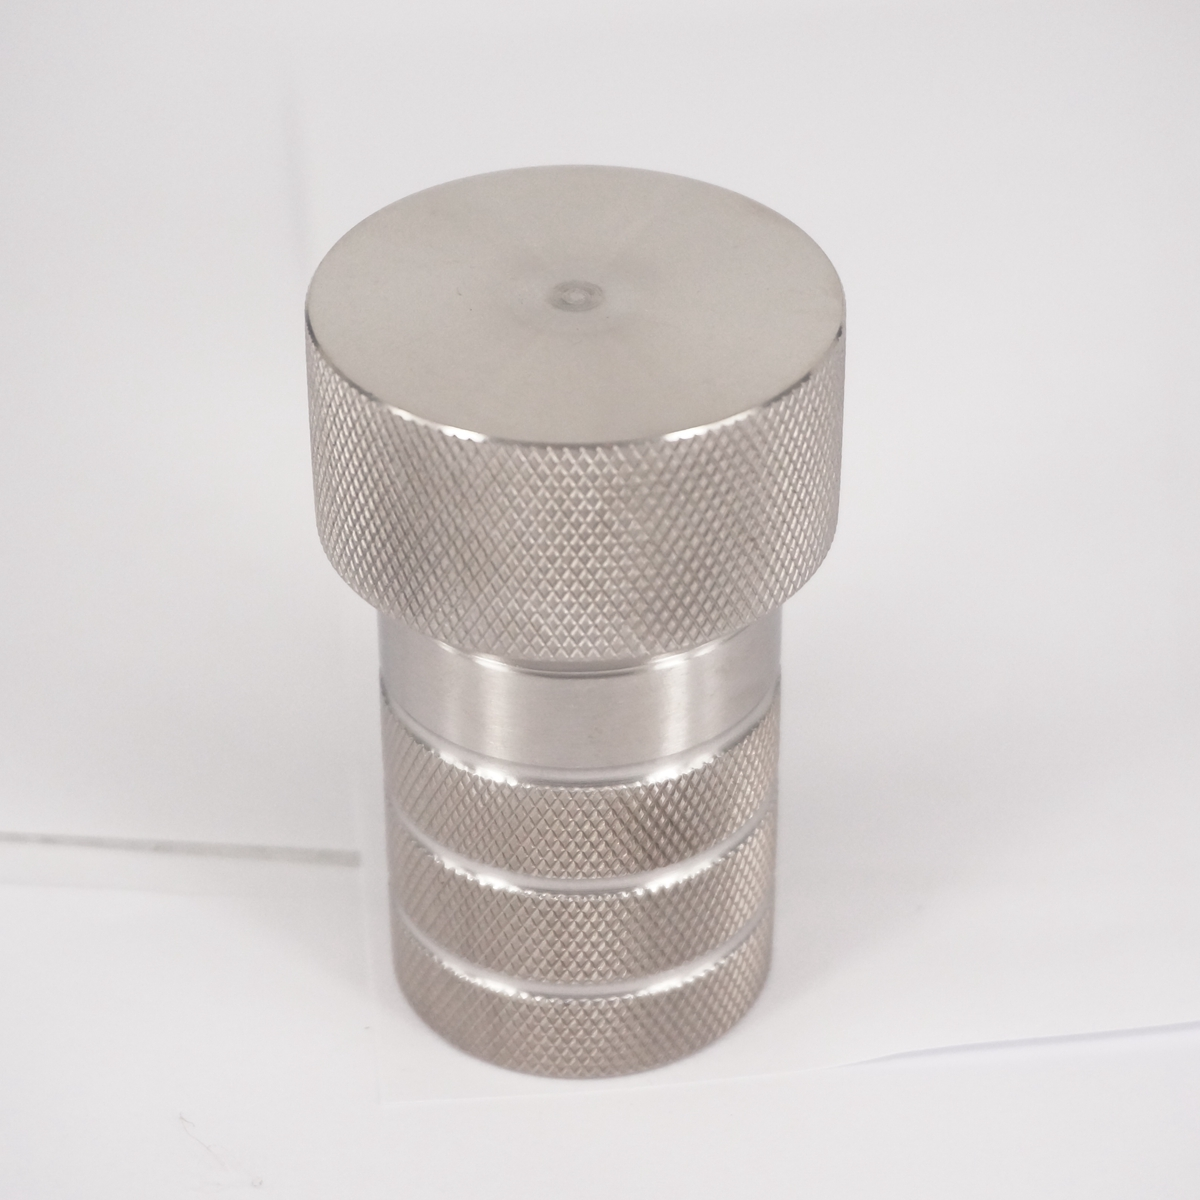 15ml PTFE Lined Hydrothermal Synthesis Autoclave Reactor Lined Vessel Inner Sleeve High Pressure Digestion Tank